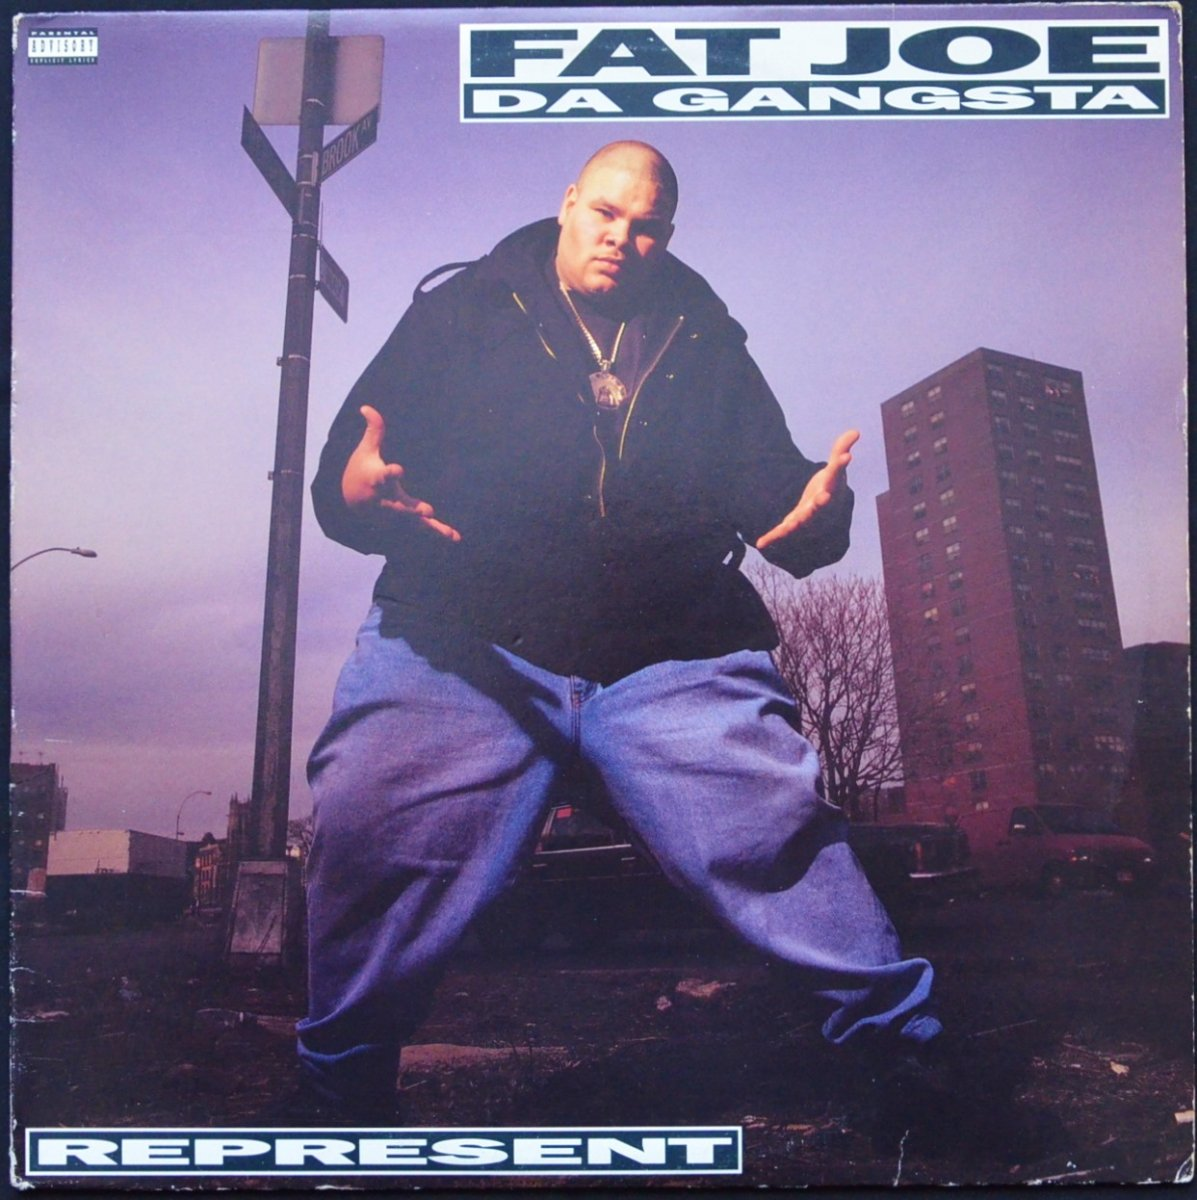 FAT JOE DA GANGSTA / REPRESENT (1LP)